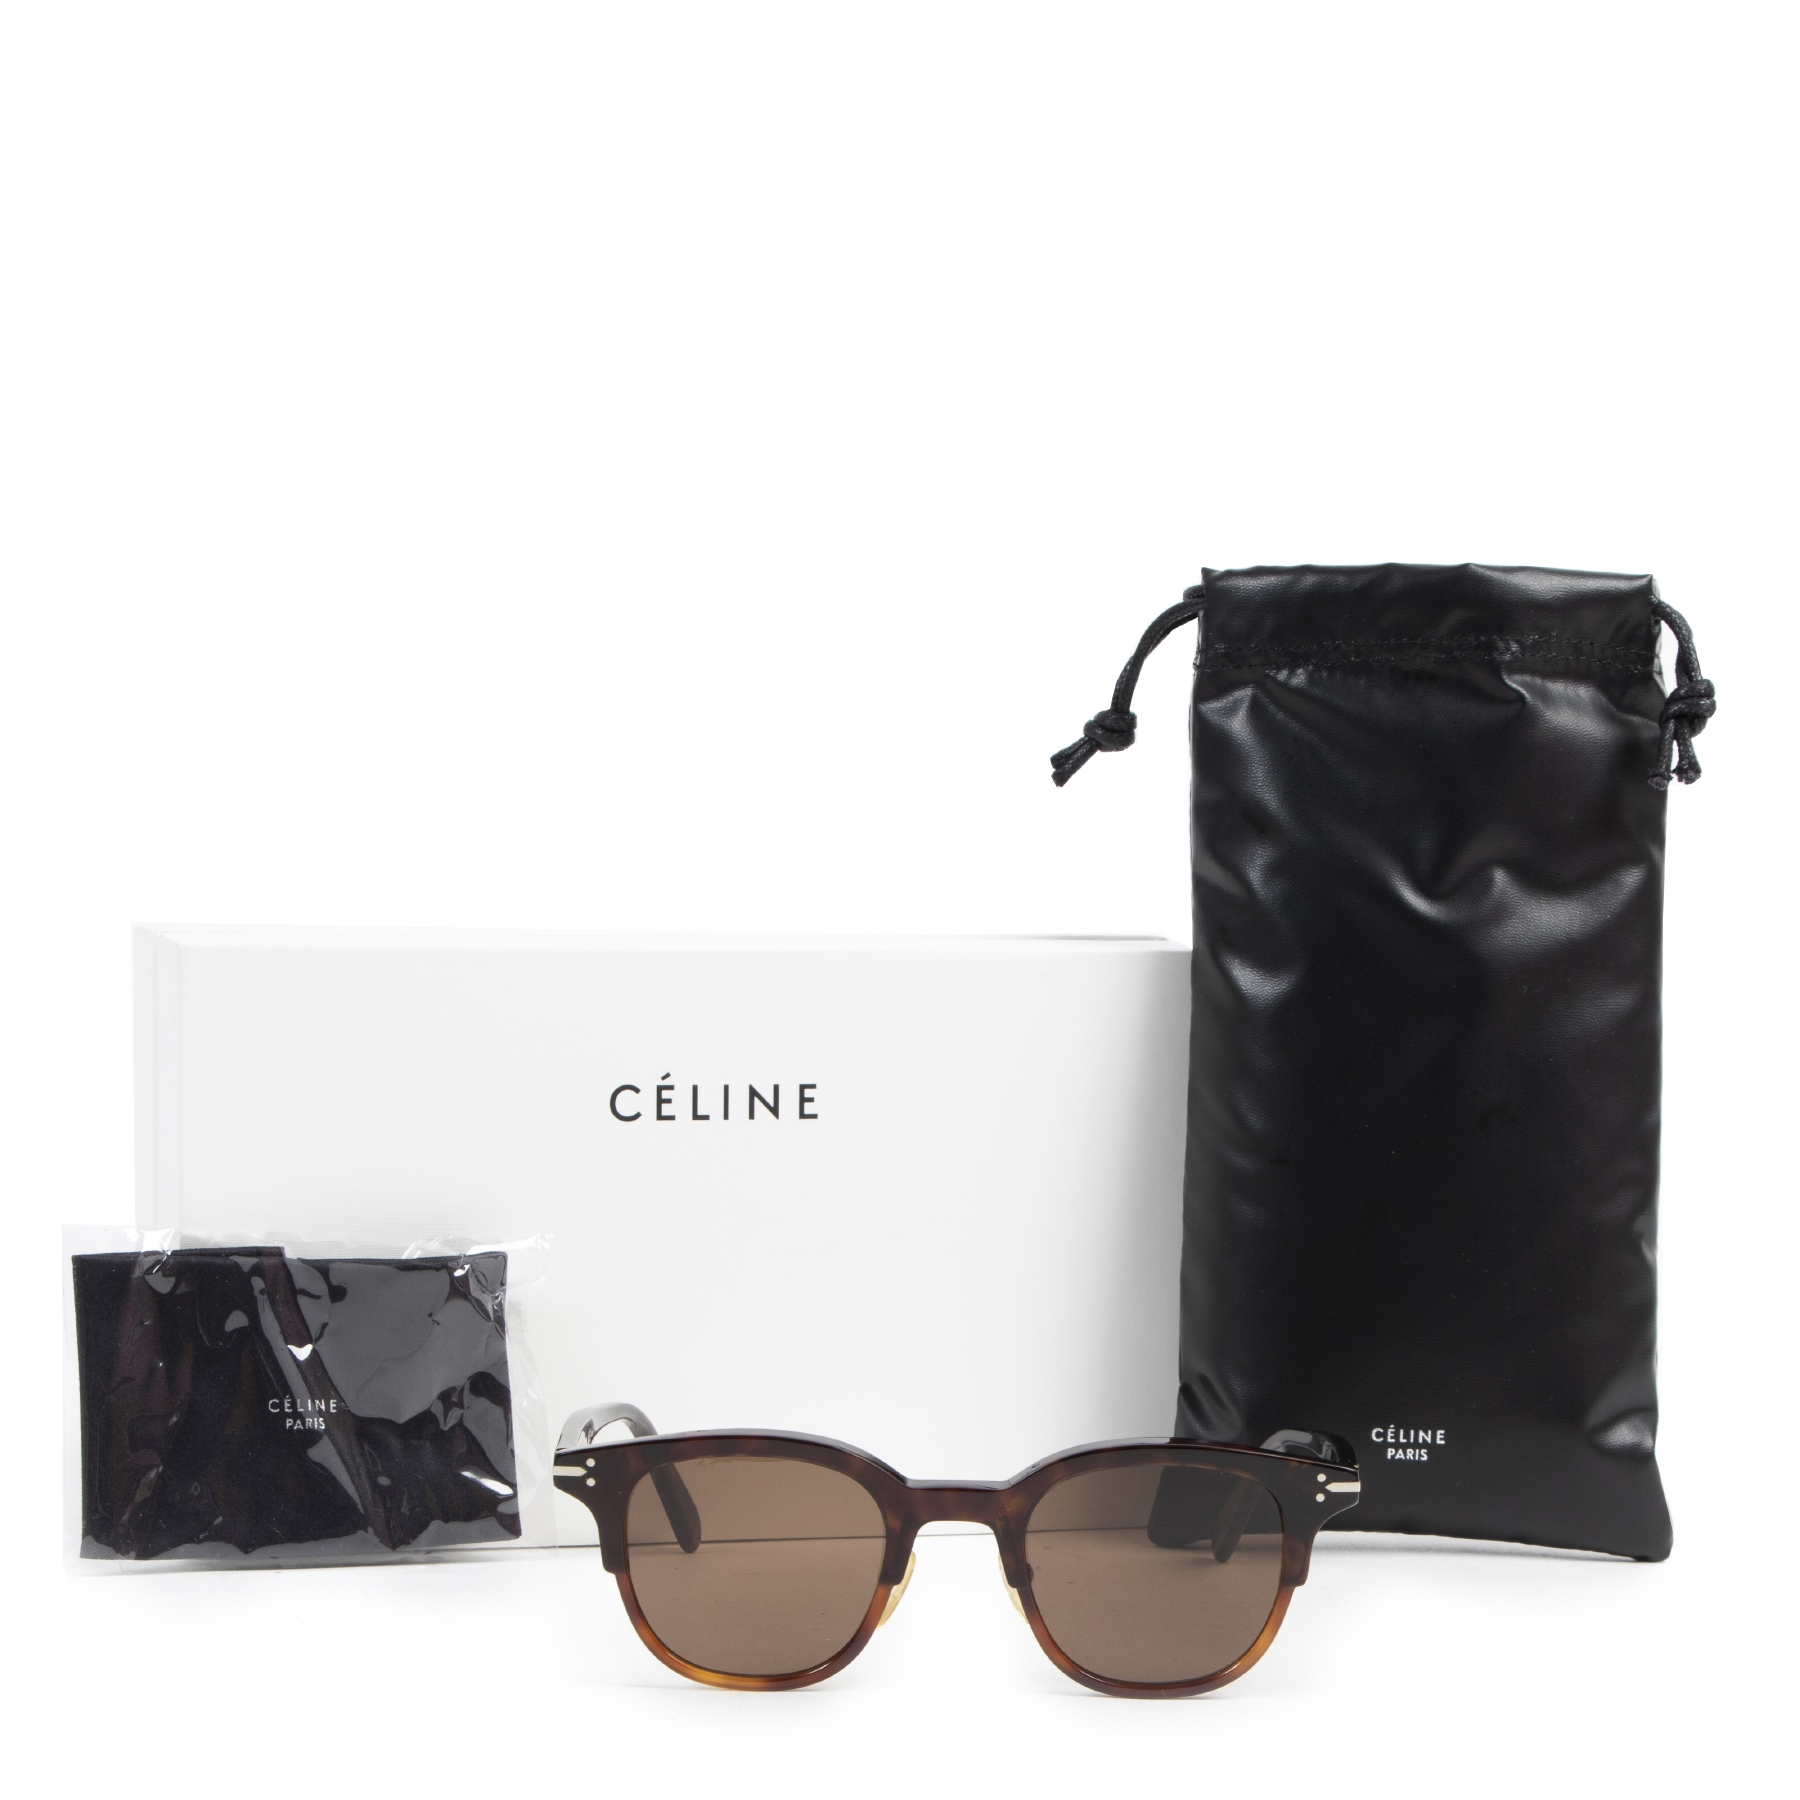 Authentic secondhand Céline Round Bicolor Black / Havanna Sunglasses designer accessories fashion luxury vintage webshop safe secure online shopping